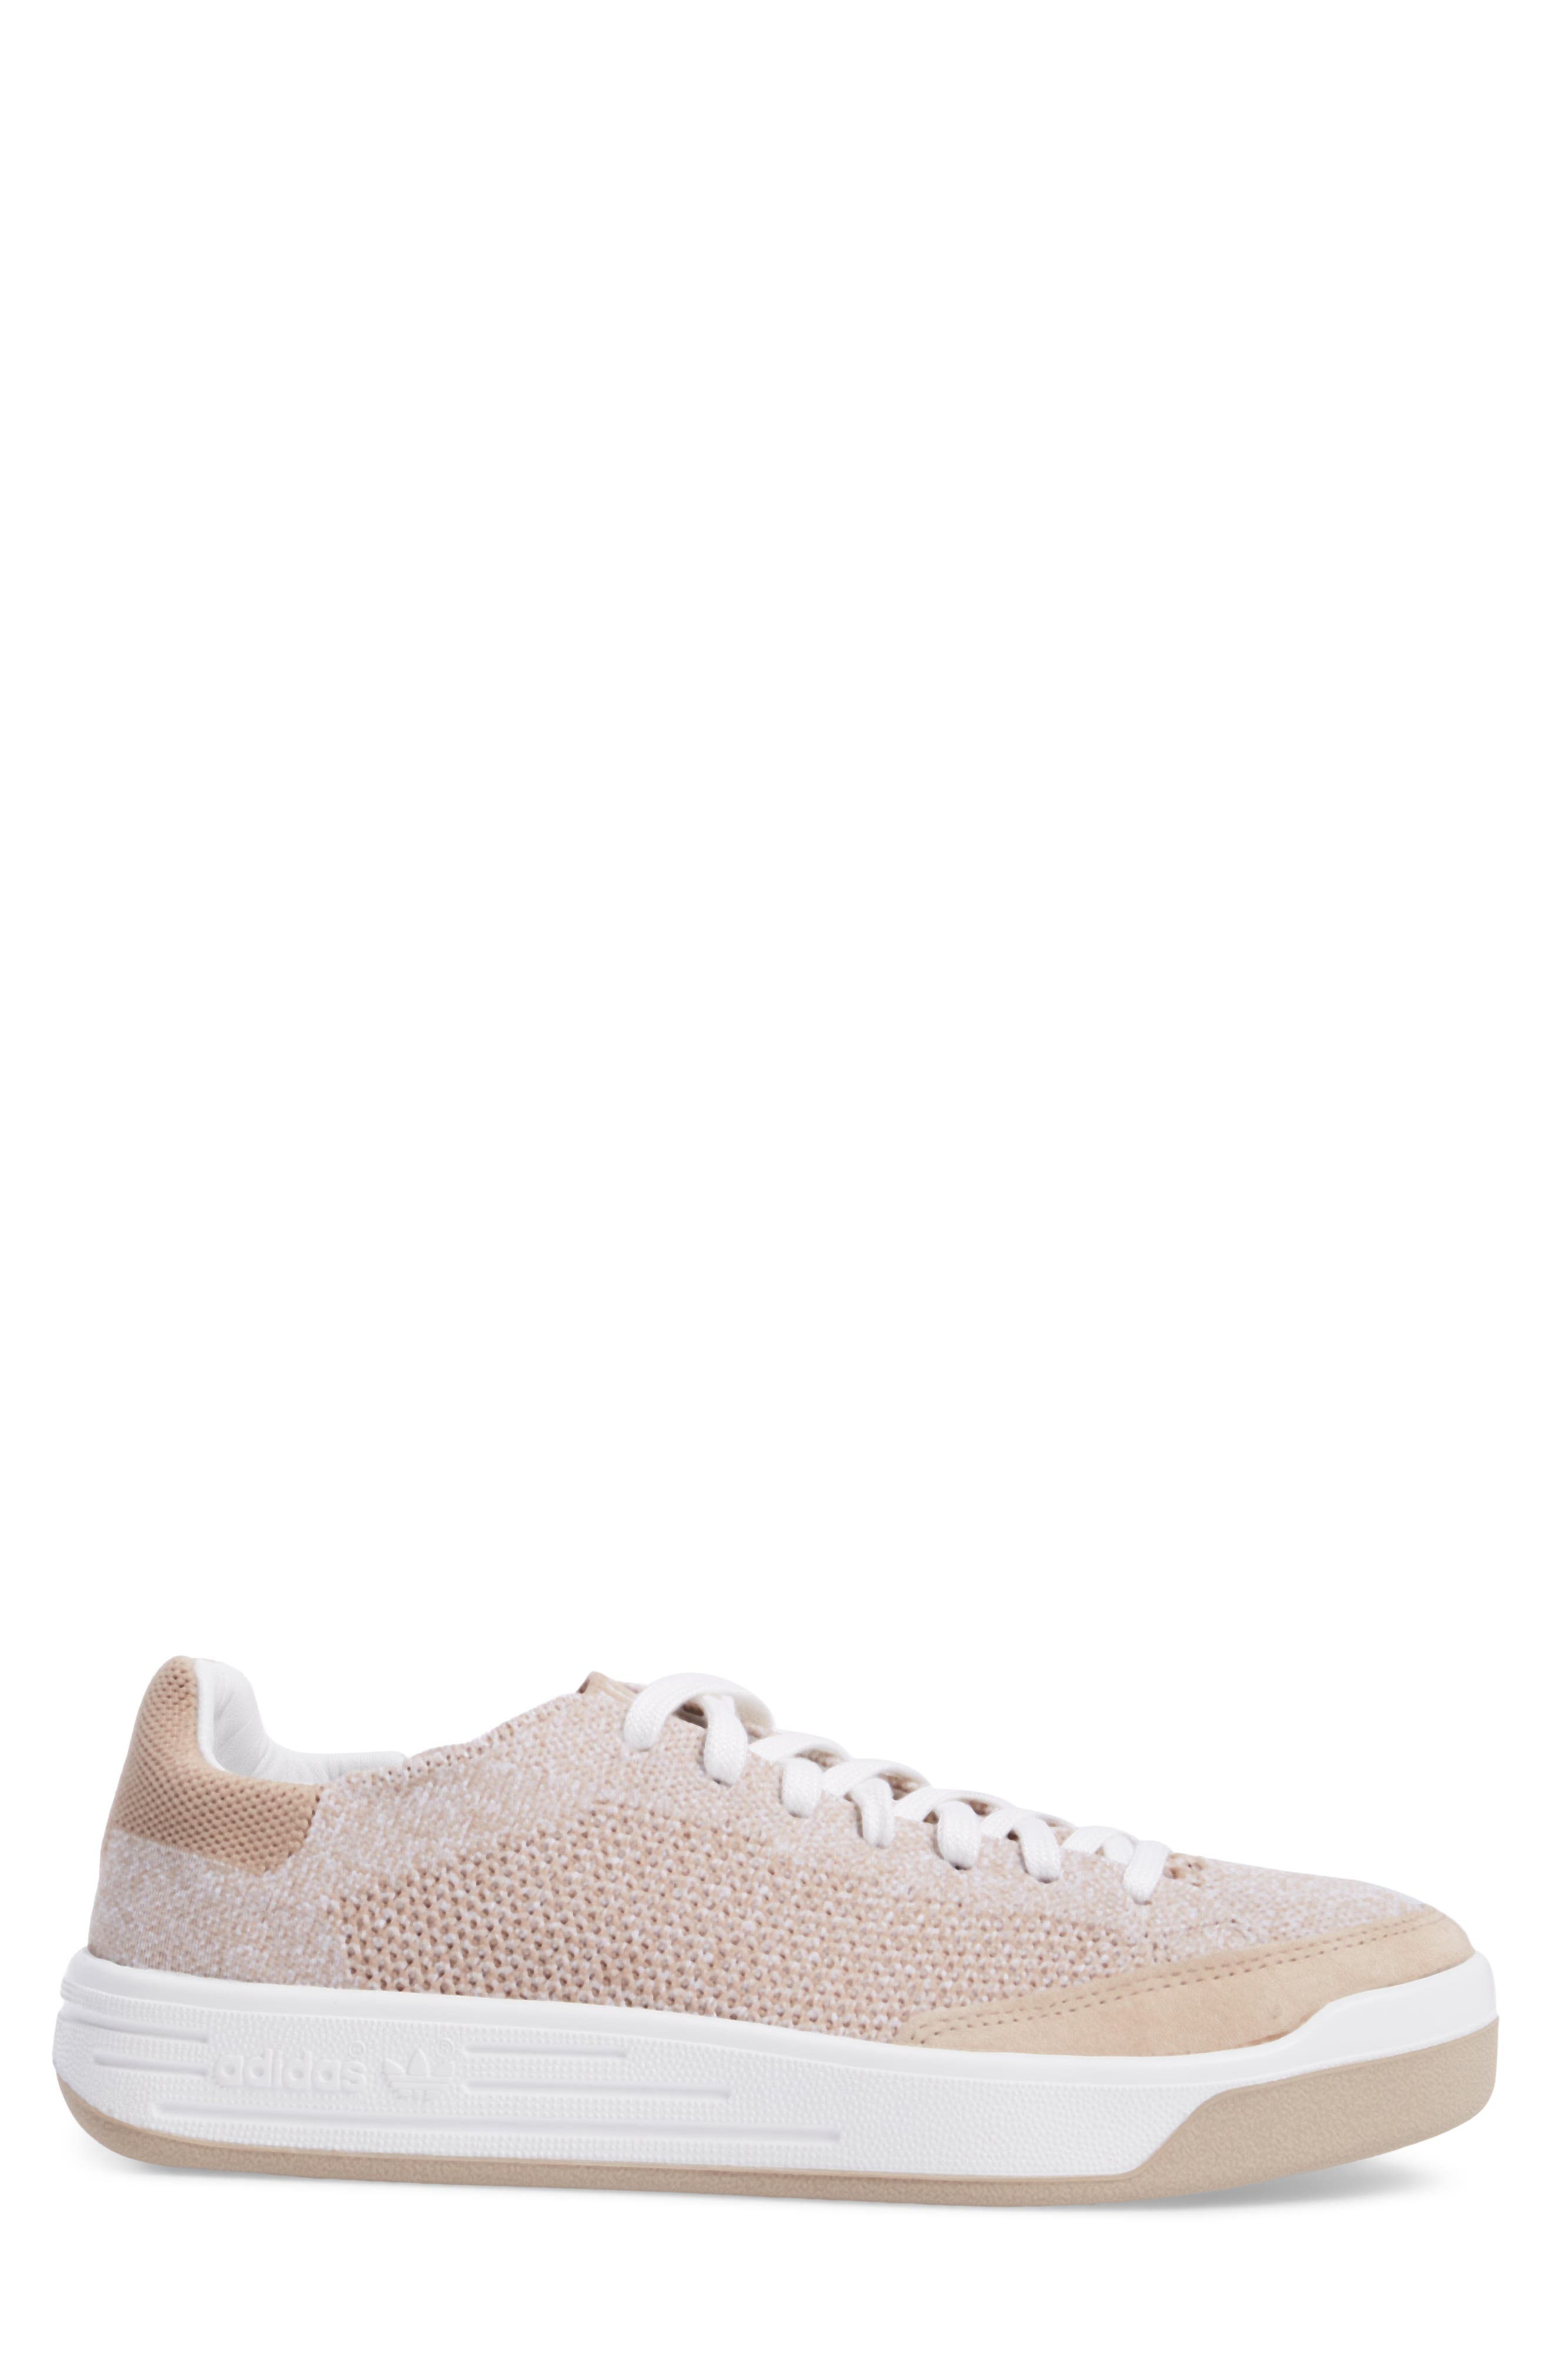 Rod Laver Super Primeknit Sneaker,                             Alternate thumbnail 3, color,                             Khaki/ White/ Crystal White